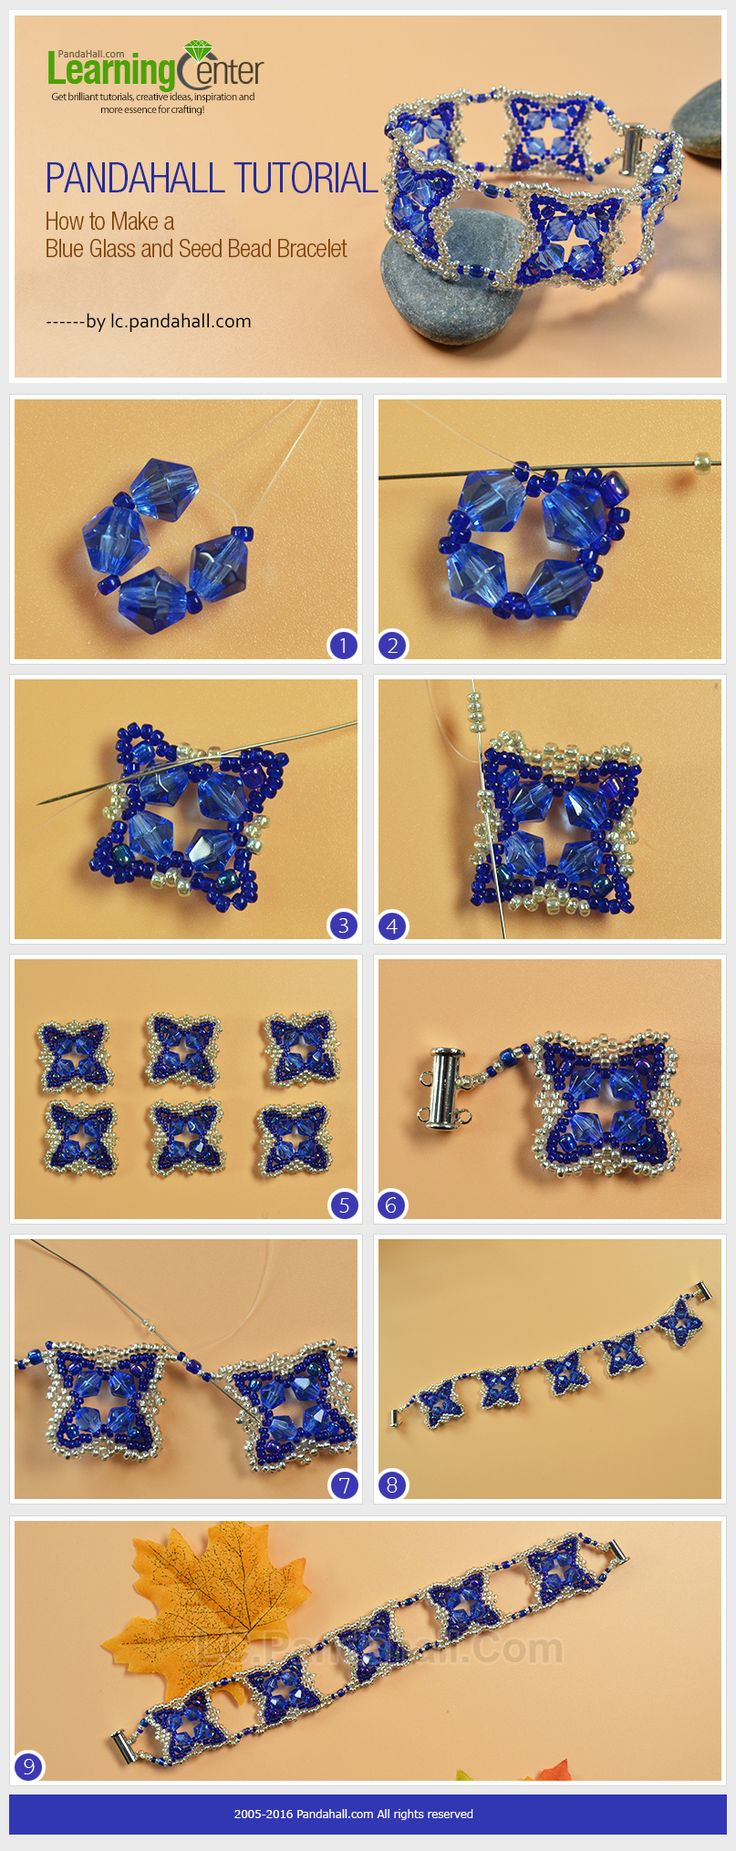 Pandahall Tutorial on How to Make a Blue Glass and Seed Bead Bracelet from LC.Pandahall.com